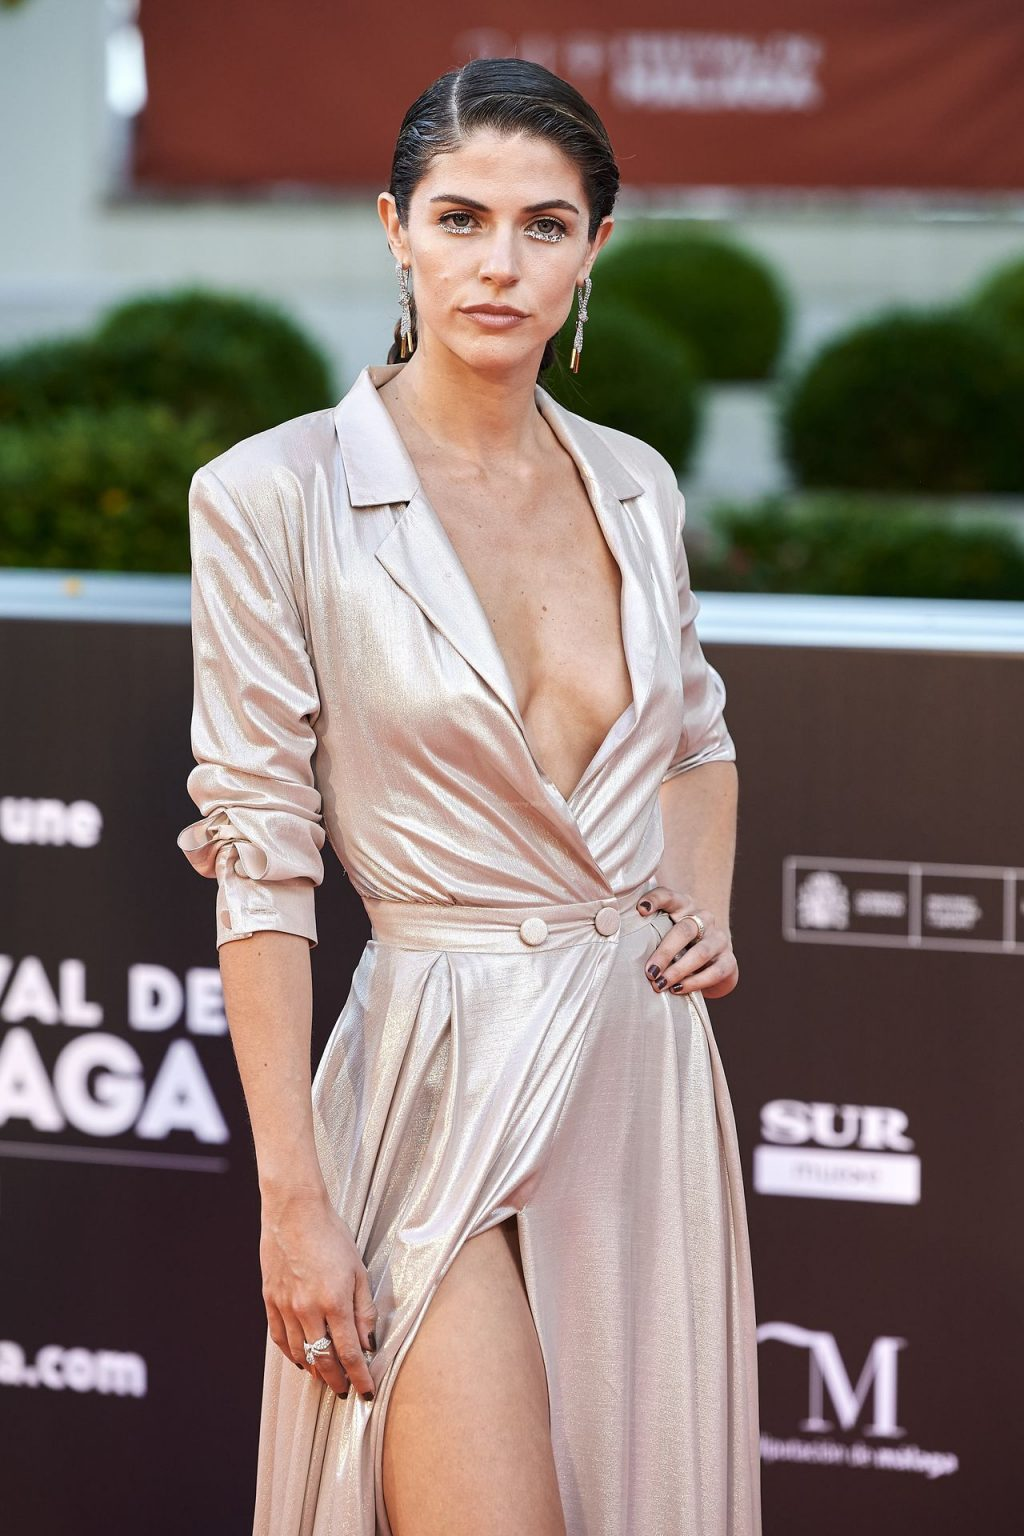 Stephanie Cayo Flashes Her Tits and Panties at the 24th Malaga Film Festival (14 Photos)